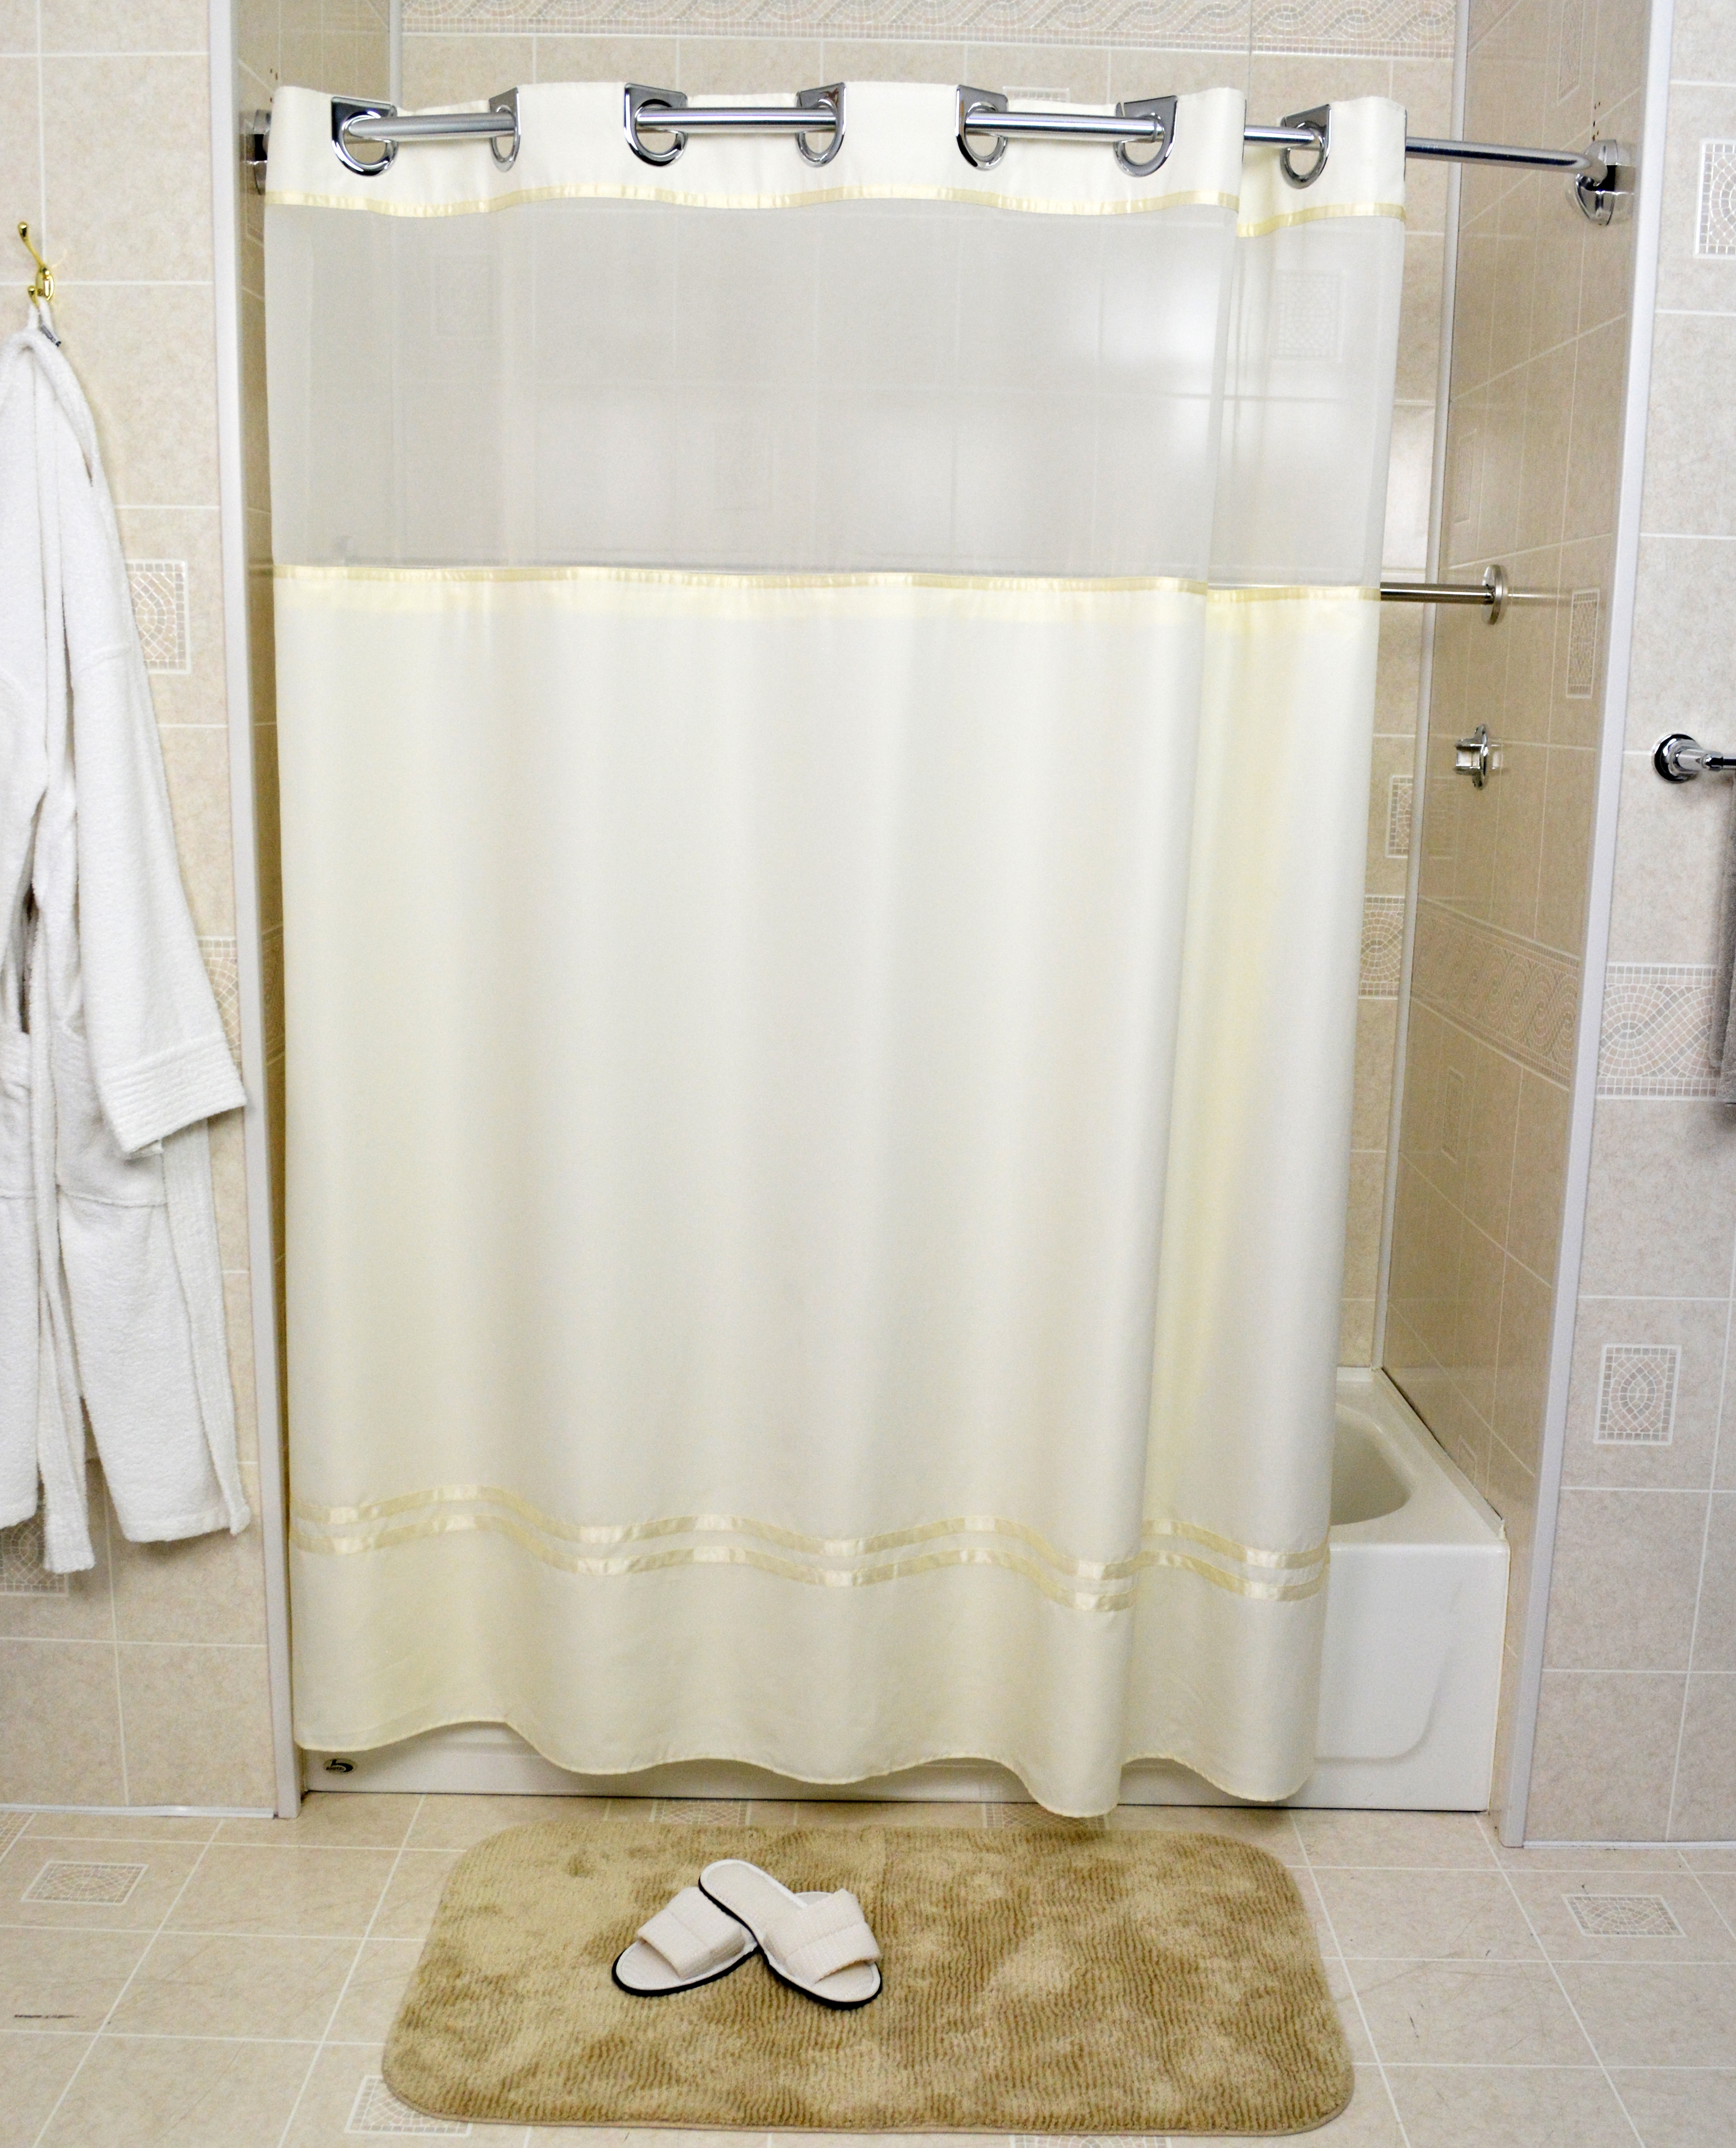 Beige with Beige Ribbon : EZY Hang MATT SATIN, Casino Hotel Shower Curtain with Snap on liner, 100% polyester 72